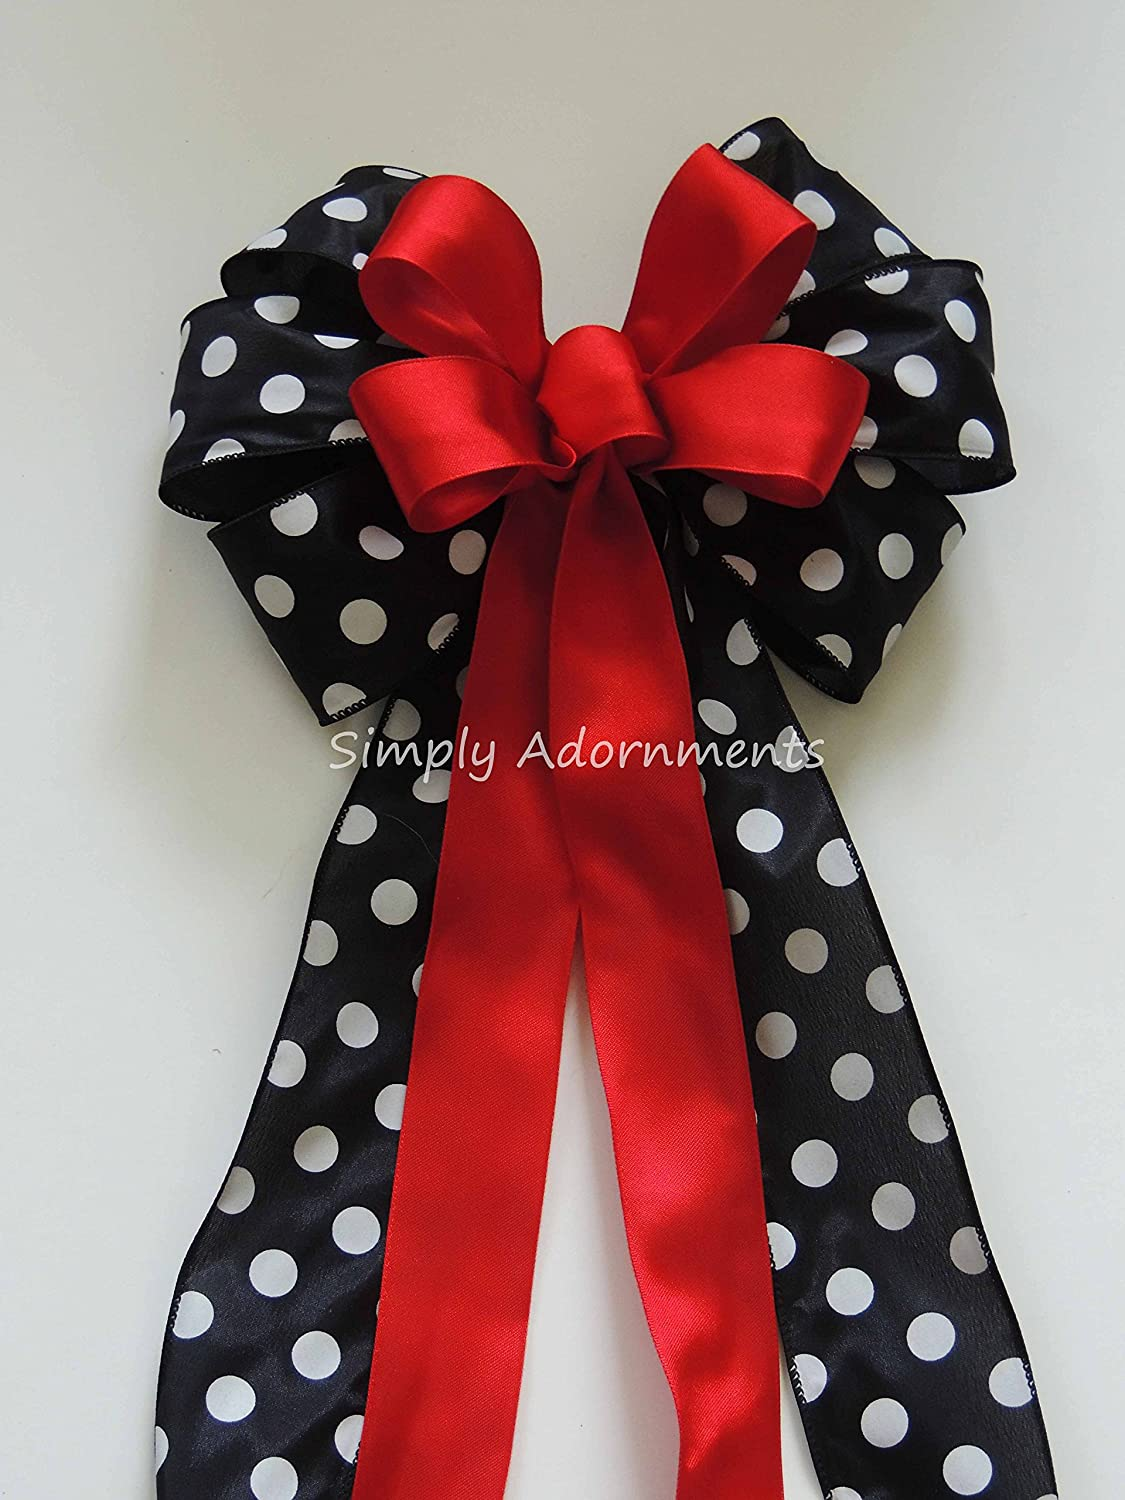 Red Black Birthday Party Decor Red Black White Polka dots Party Decoration Christmas Wreath Bow Christmas Door Hanger Bow Christmas Swag Bow Red Black Ladybug themed decor Red Black Christmas Bow